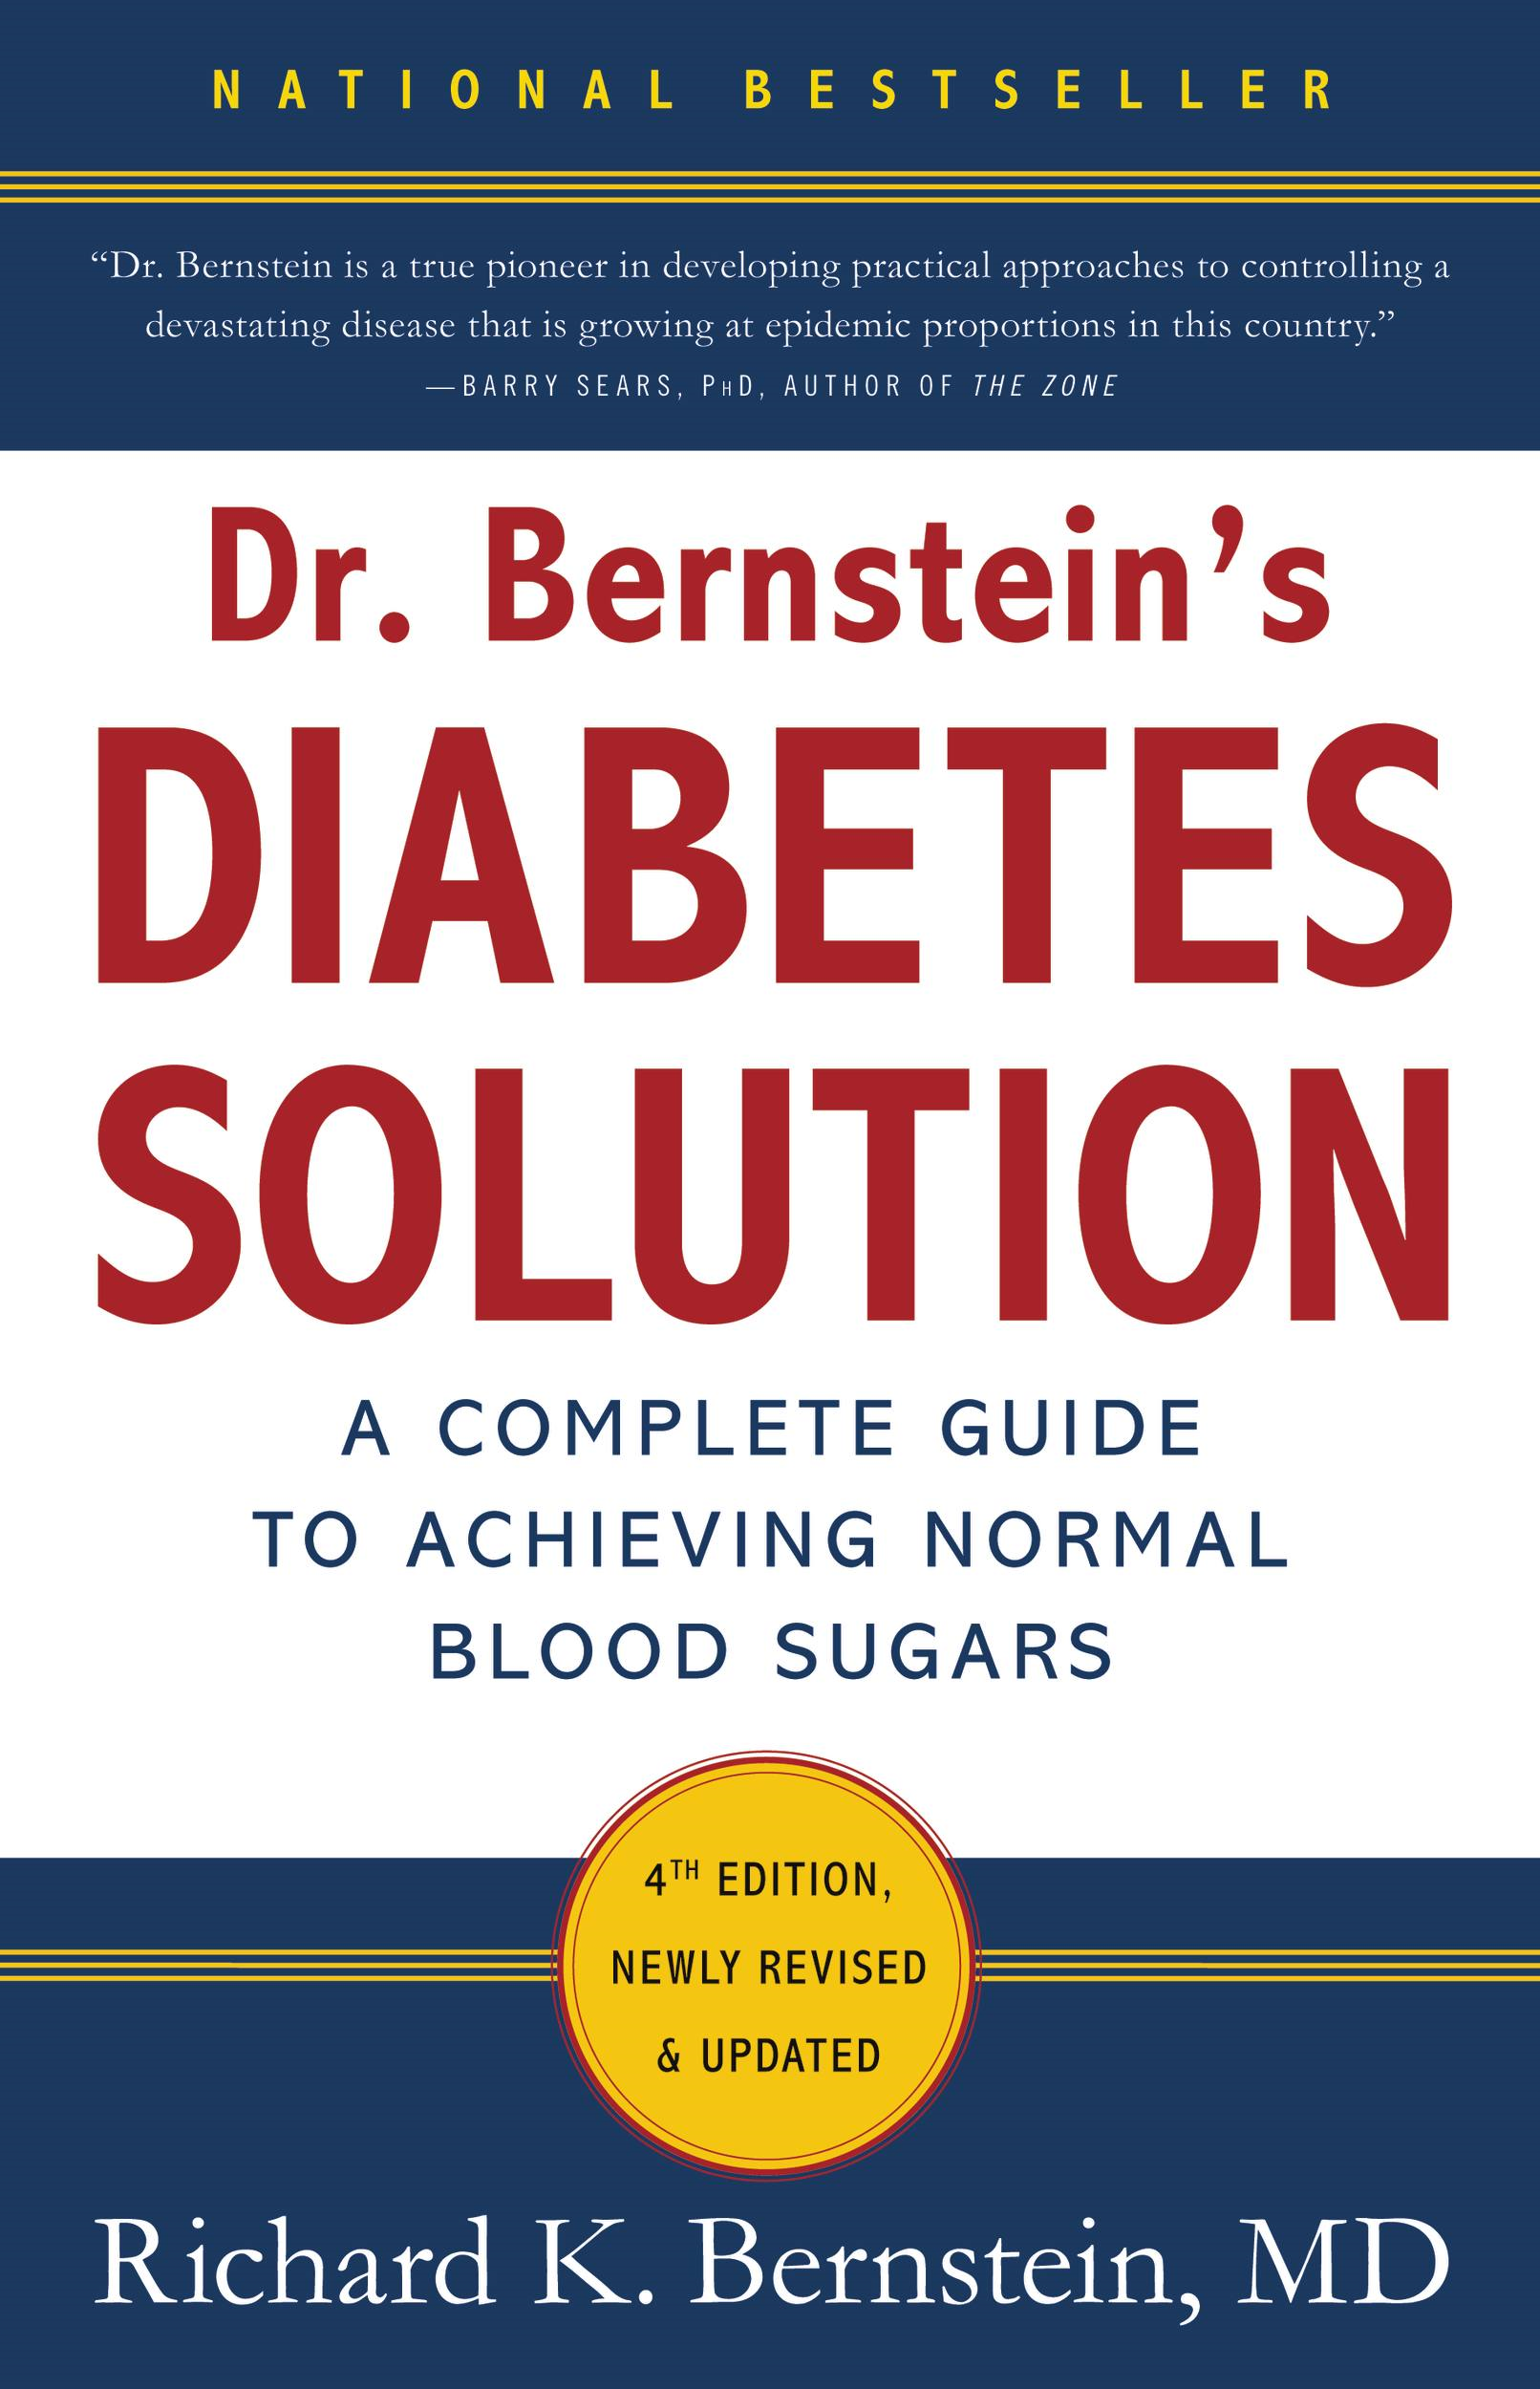 Dr. Bernstein's Diabetes Solution By: Richard K. Bernstein